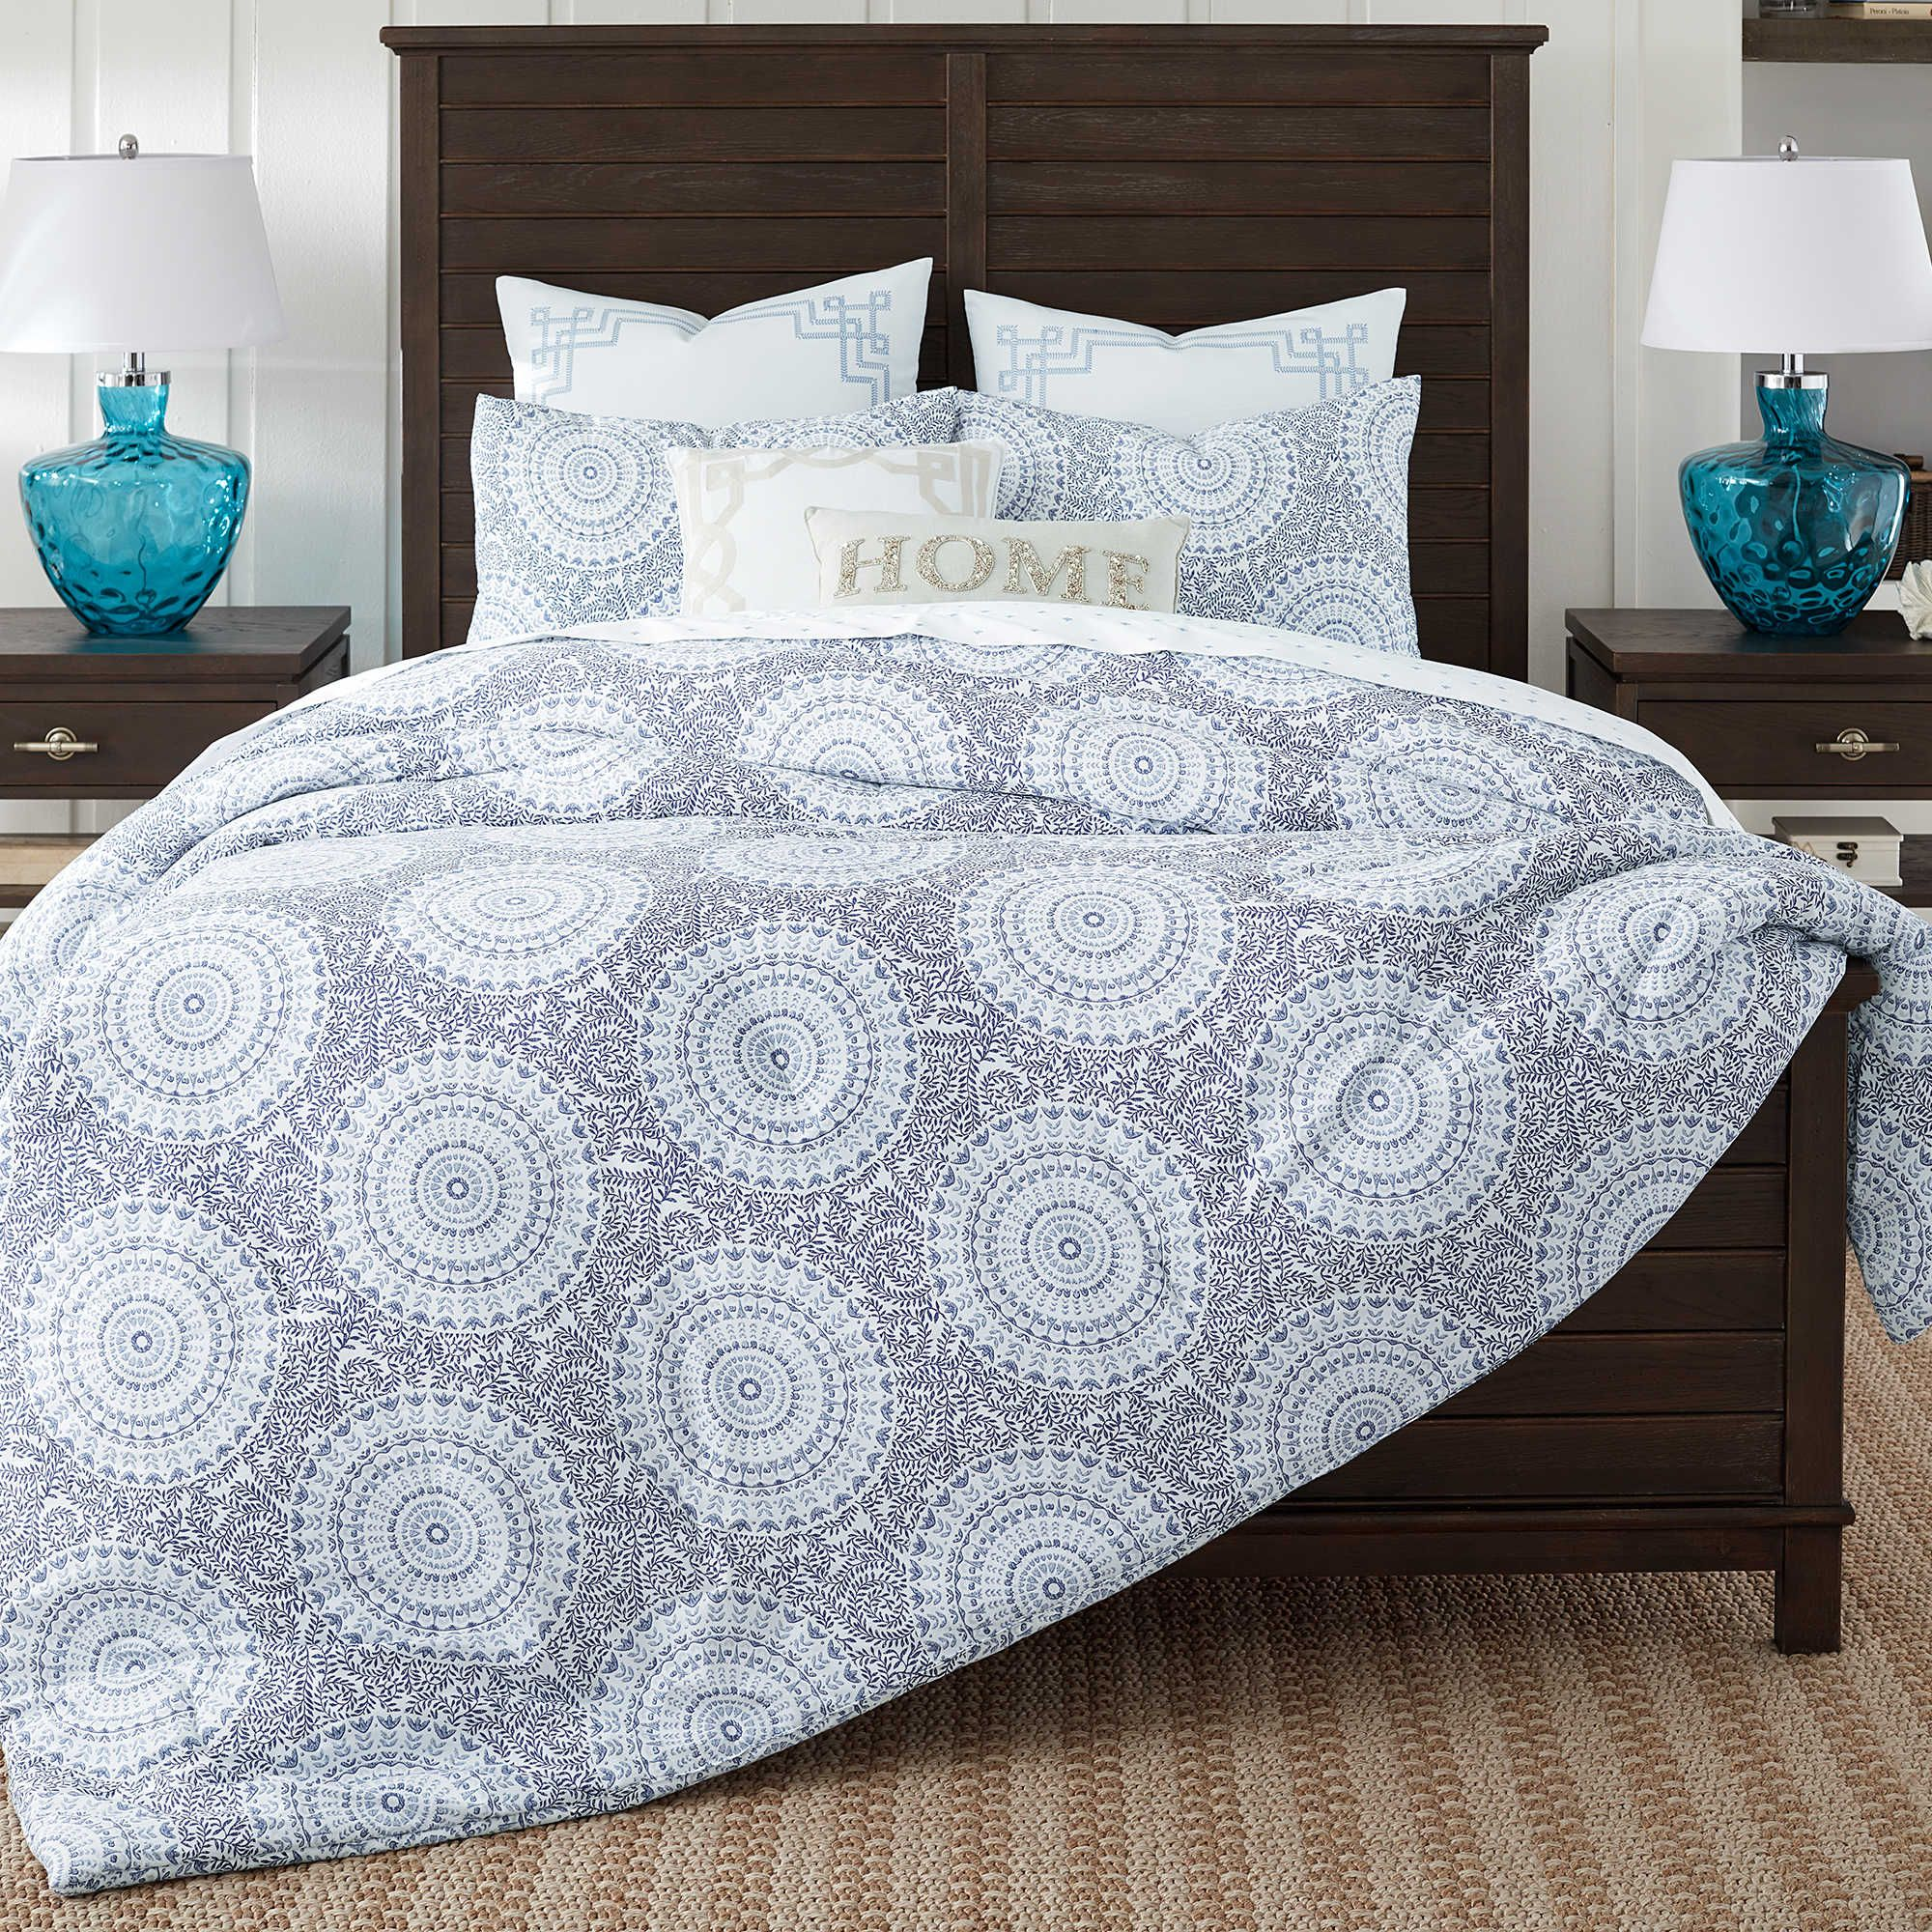 Bon Coastal Living Floral Medallion Comforter Set   Bed Bath U0026 Beyond